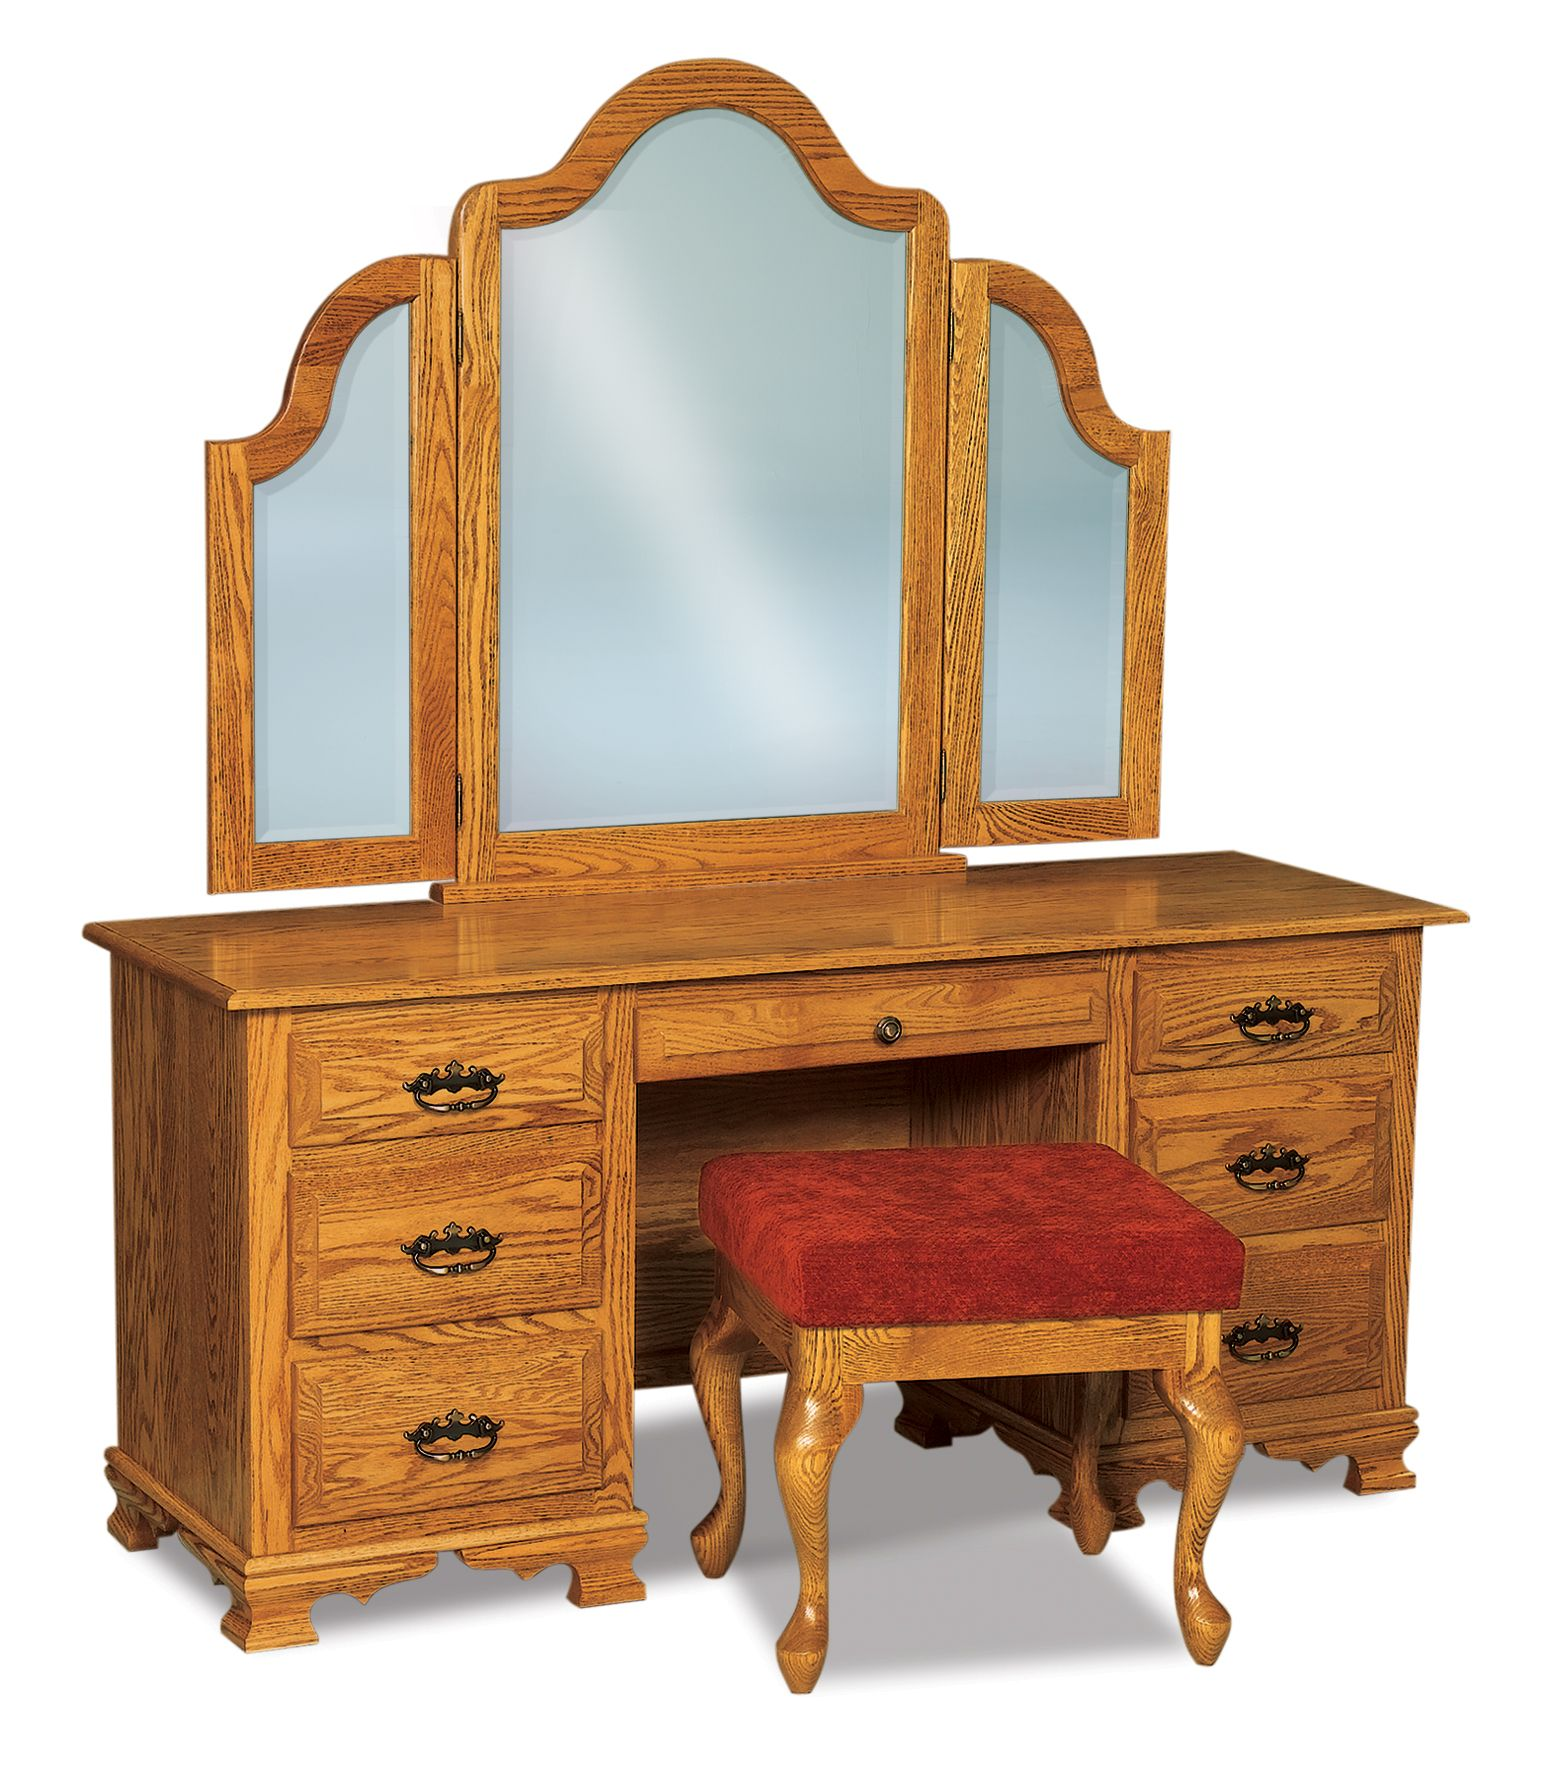 The hoosier heritage drawer vanity dresser is shown with its